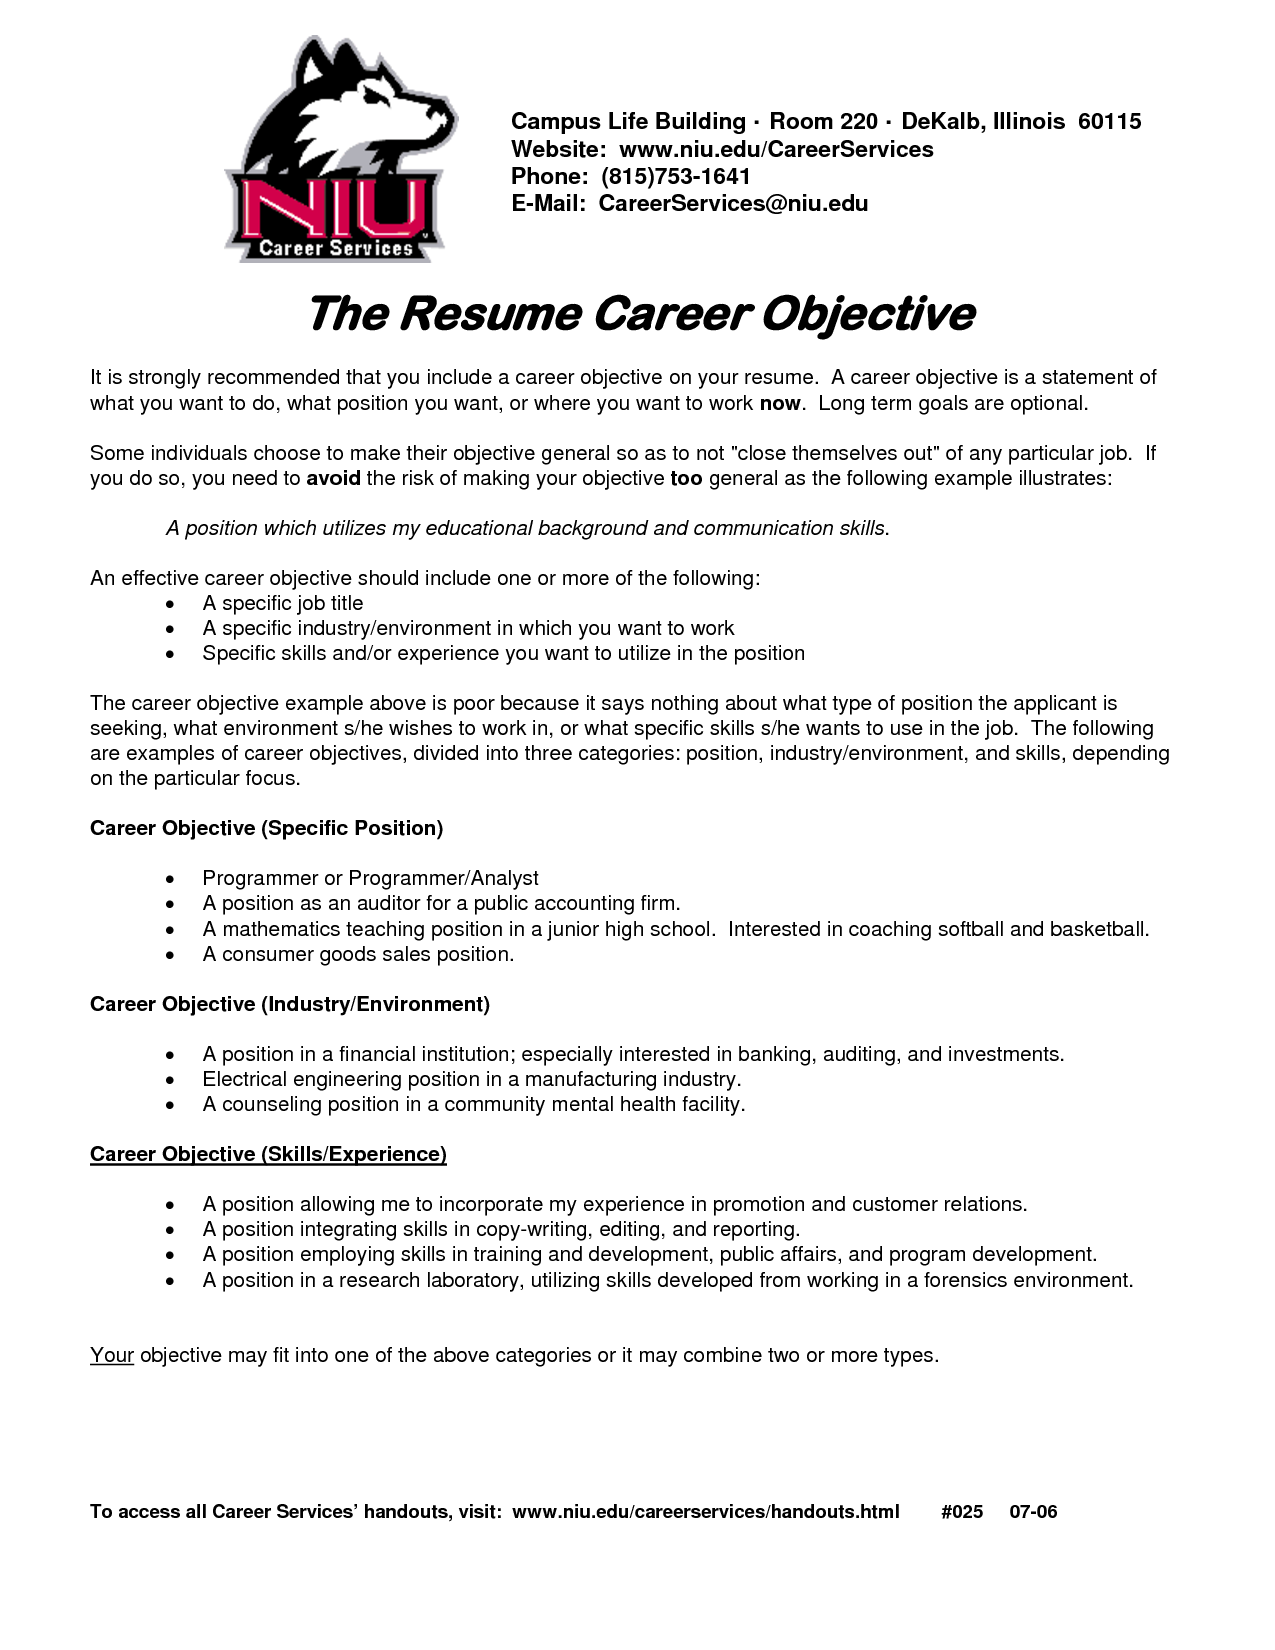 Sample Resume Objective Statement Httpswwwgooglesearchqobjective Resume  Resume